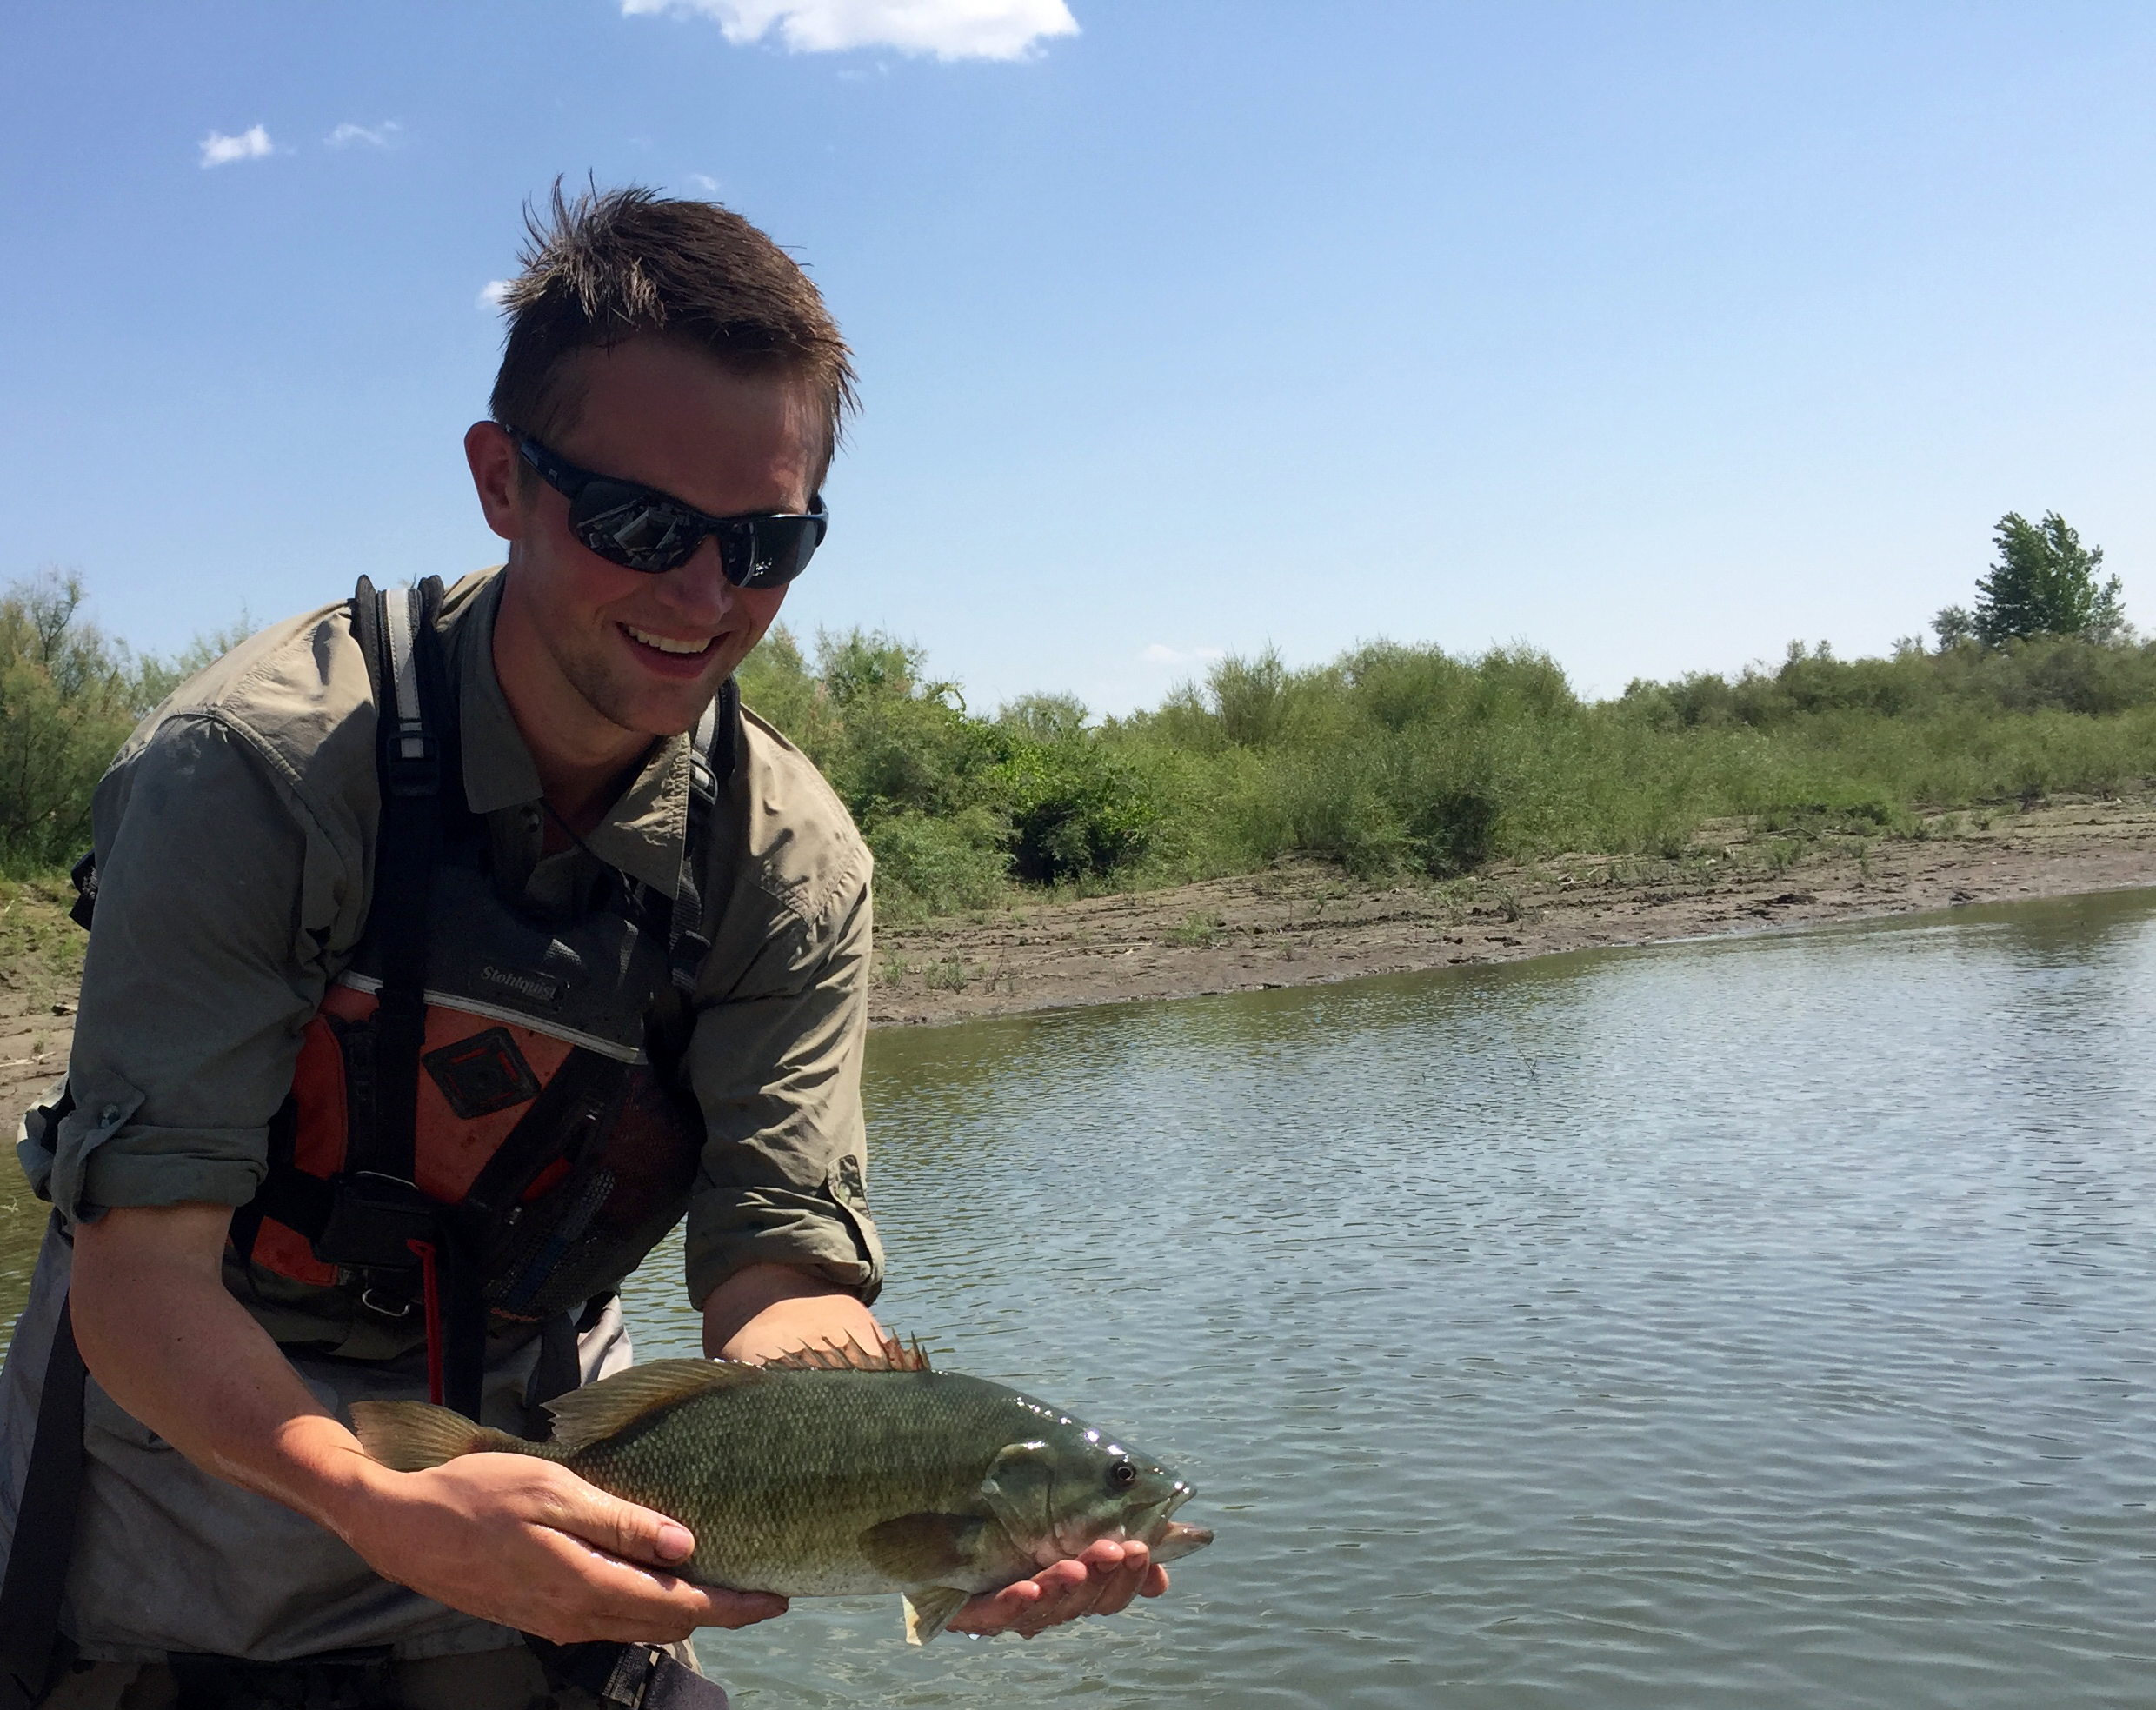 Nick Voss with Smallmouth Bass on Yellowstone River